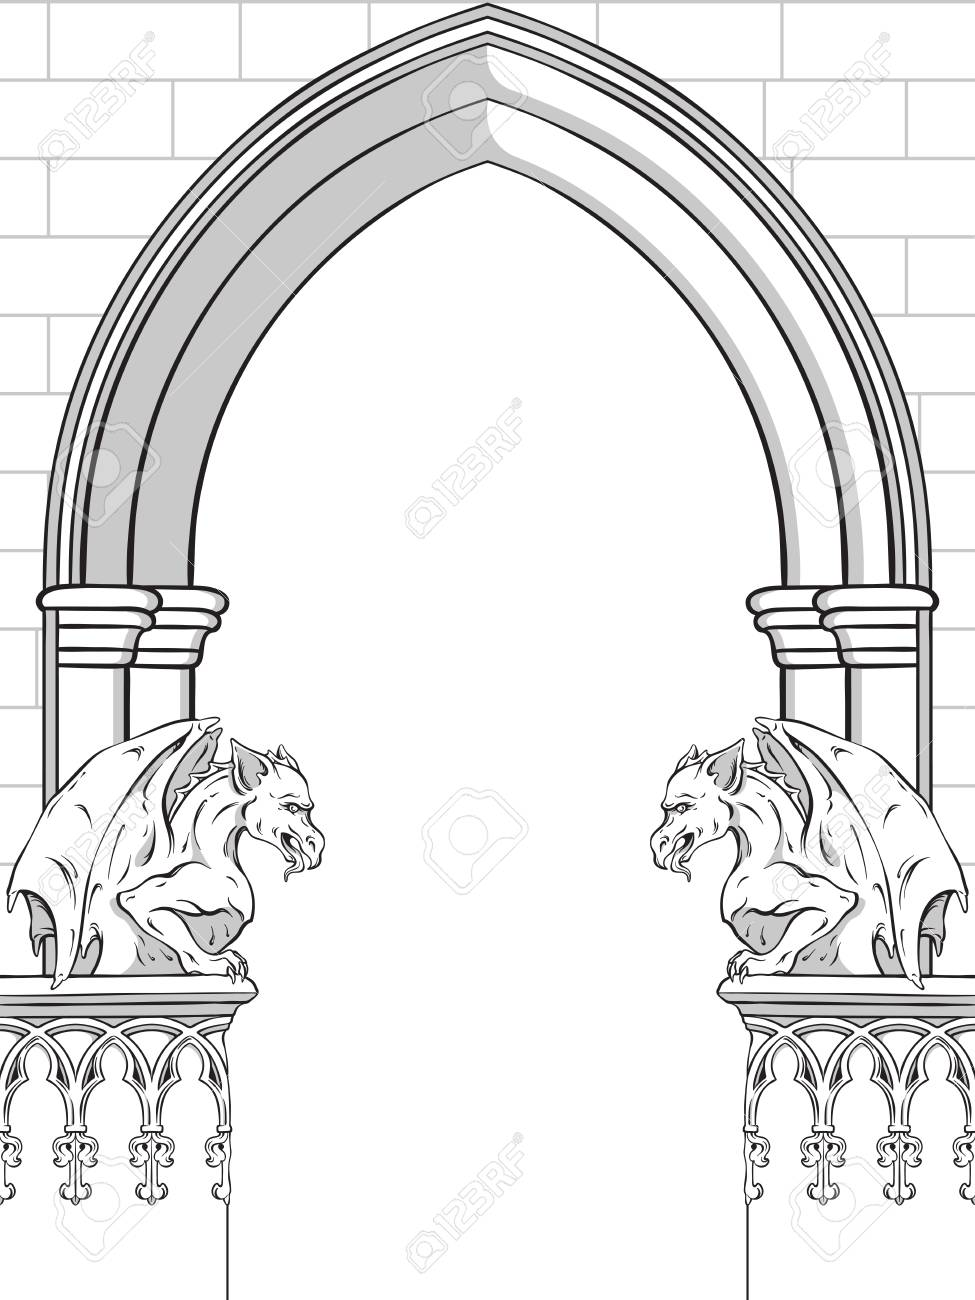 Gothic Arch With Gargoyles Hand Drawn Vector Illustration Frame Or Print Design Stock